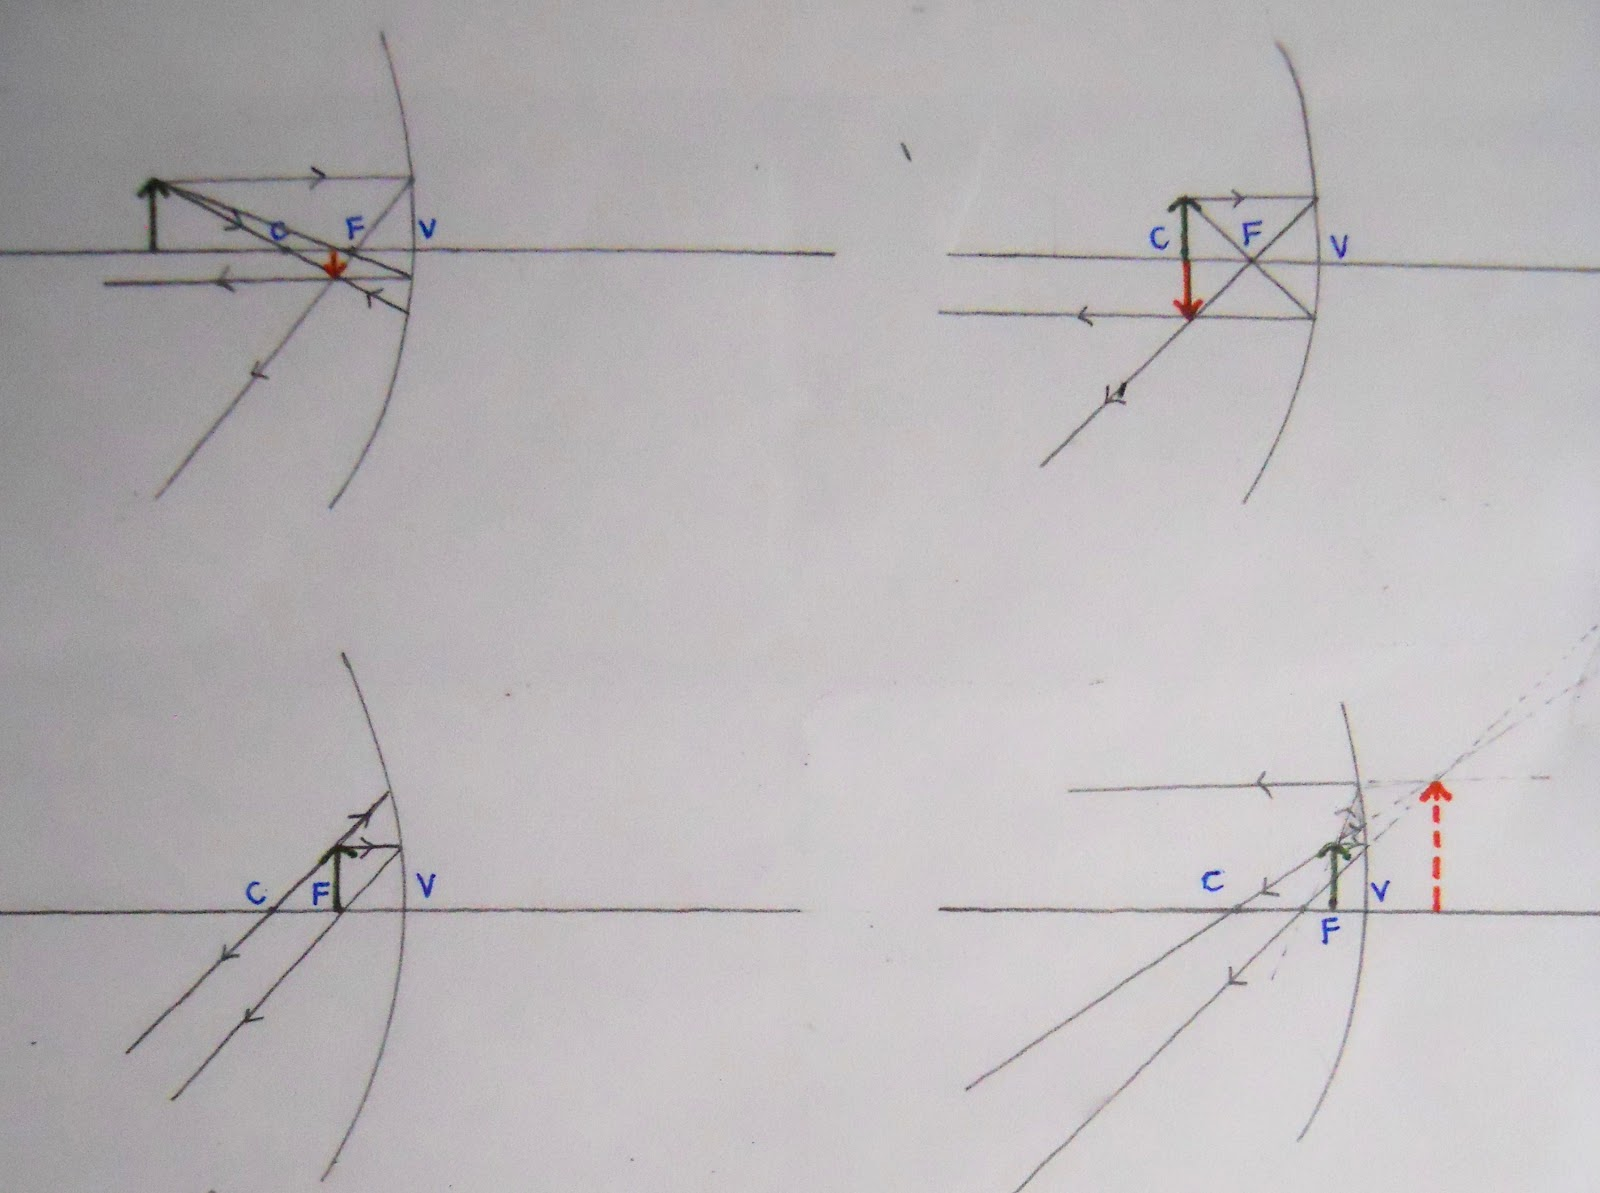 small resolution of diagram 1 light ray diagrams which show how the image in convex mirror changes depending on the object distance